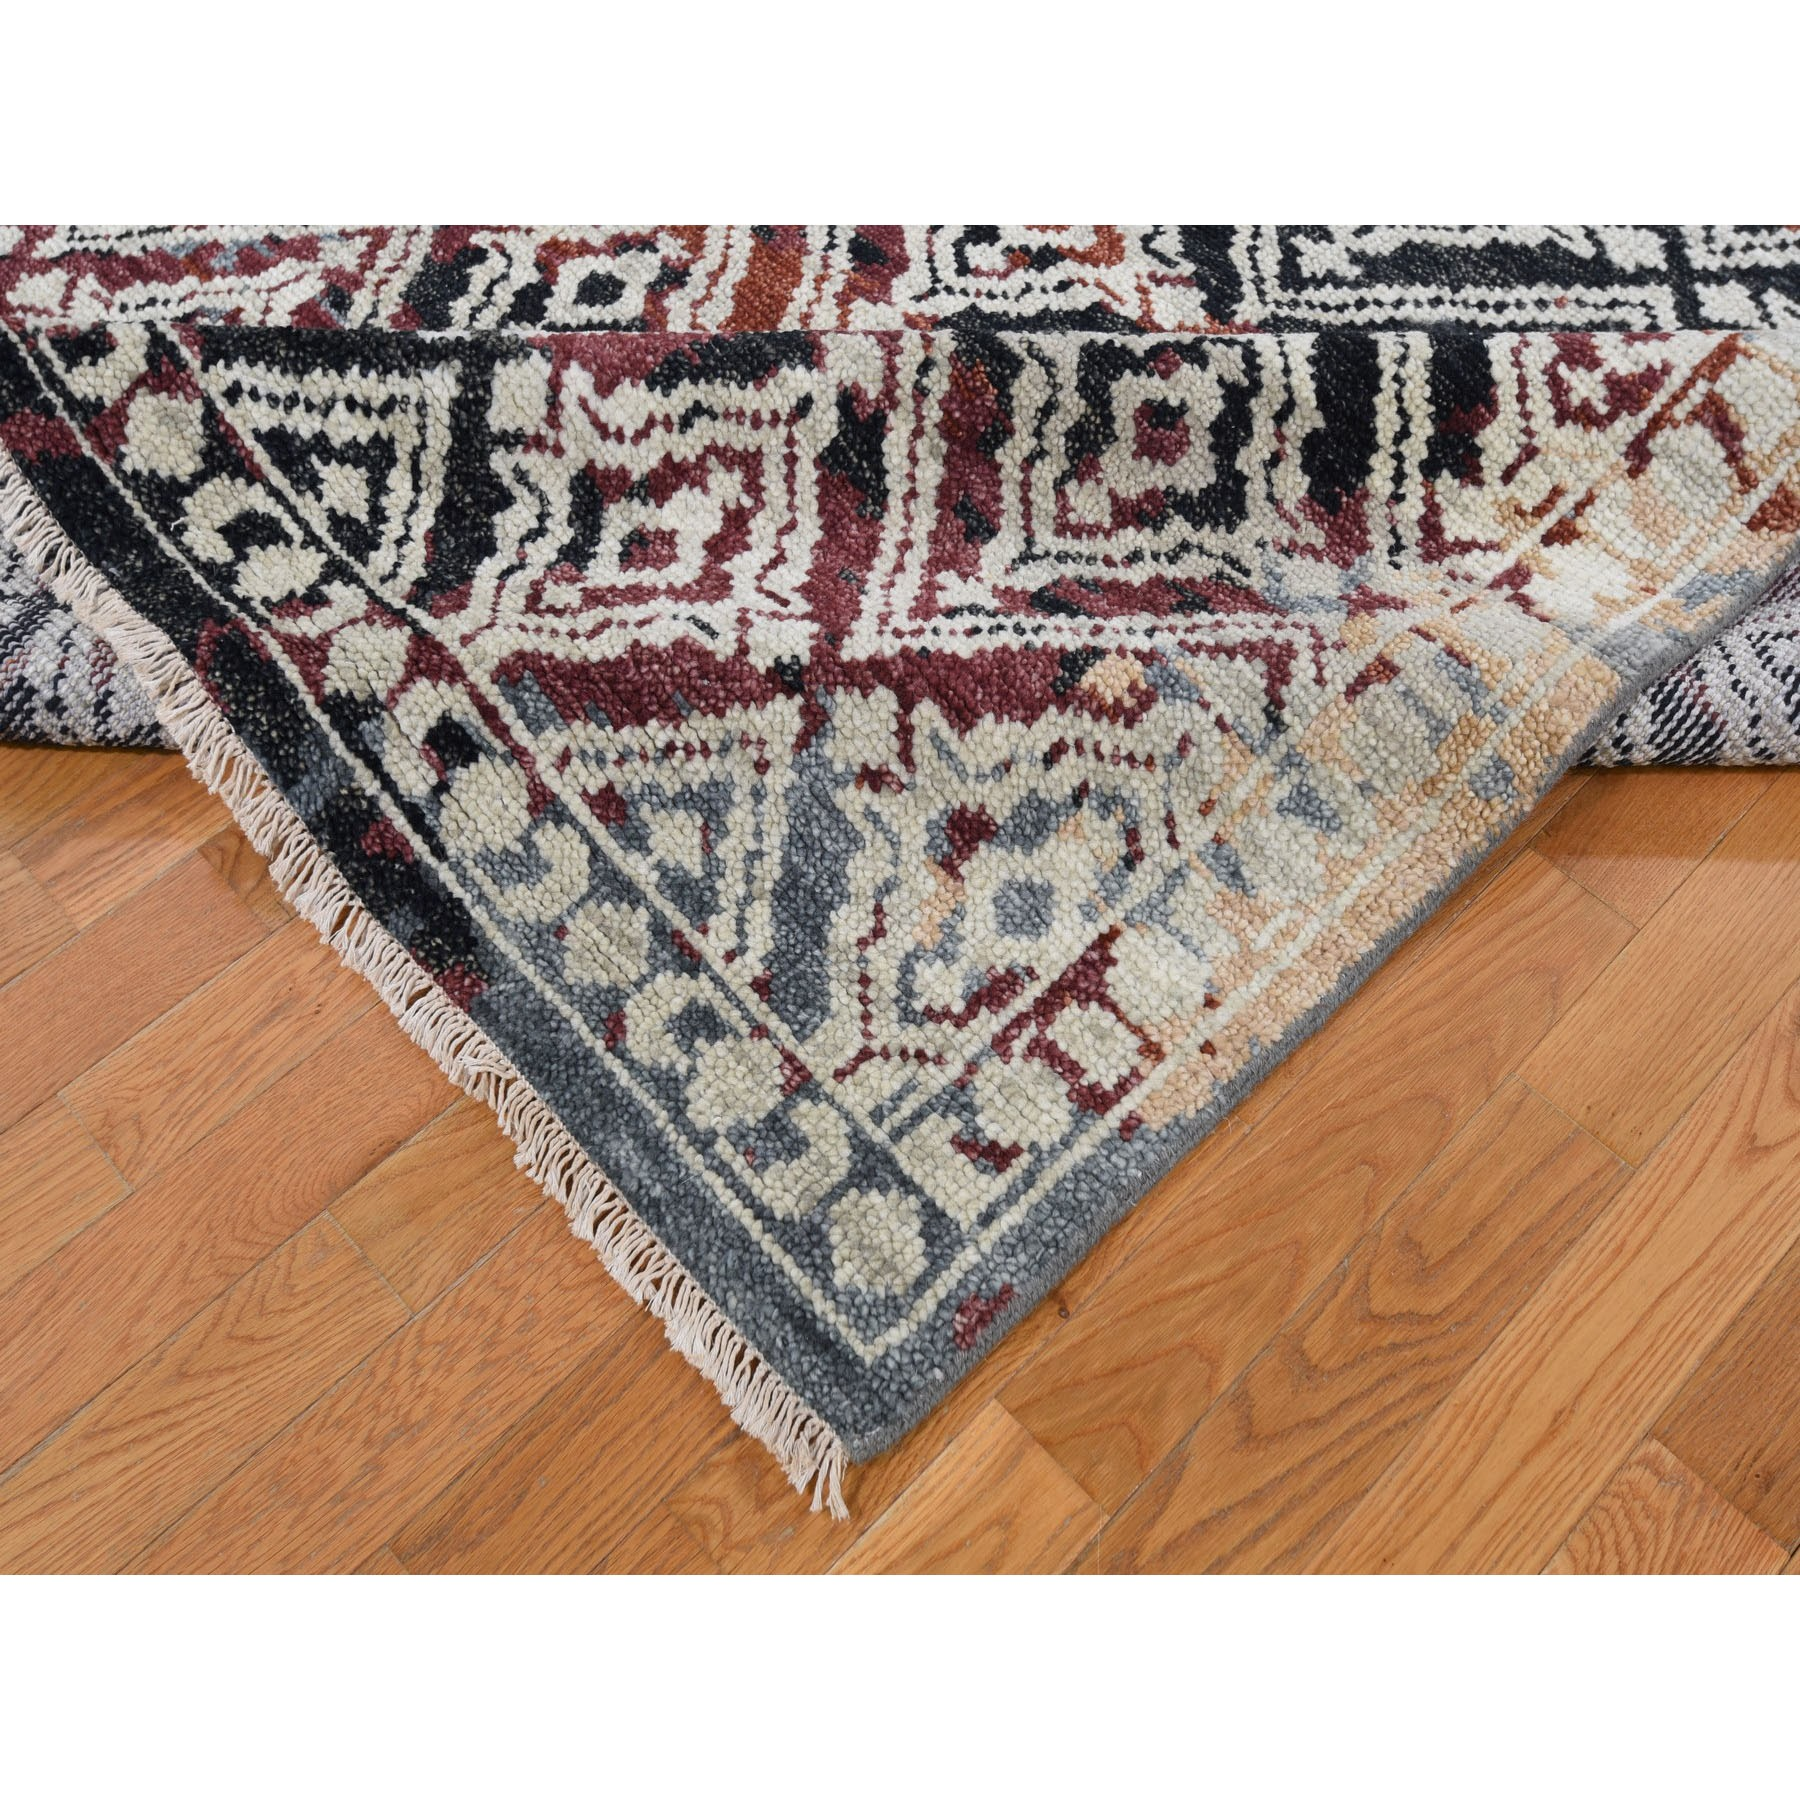 "9'x11'10""  Supple Collection Erased Mughal Design Hand Knotted Oriental Rug"